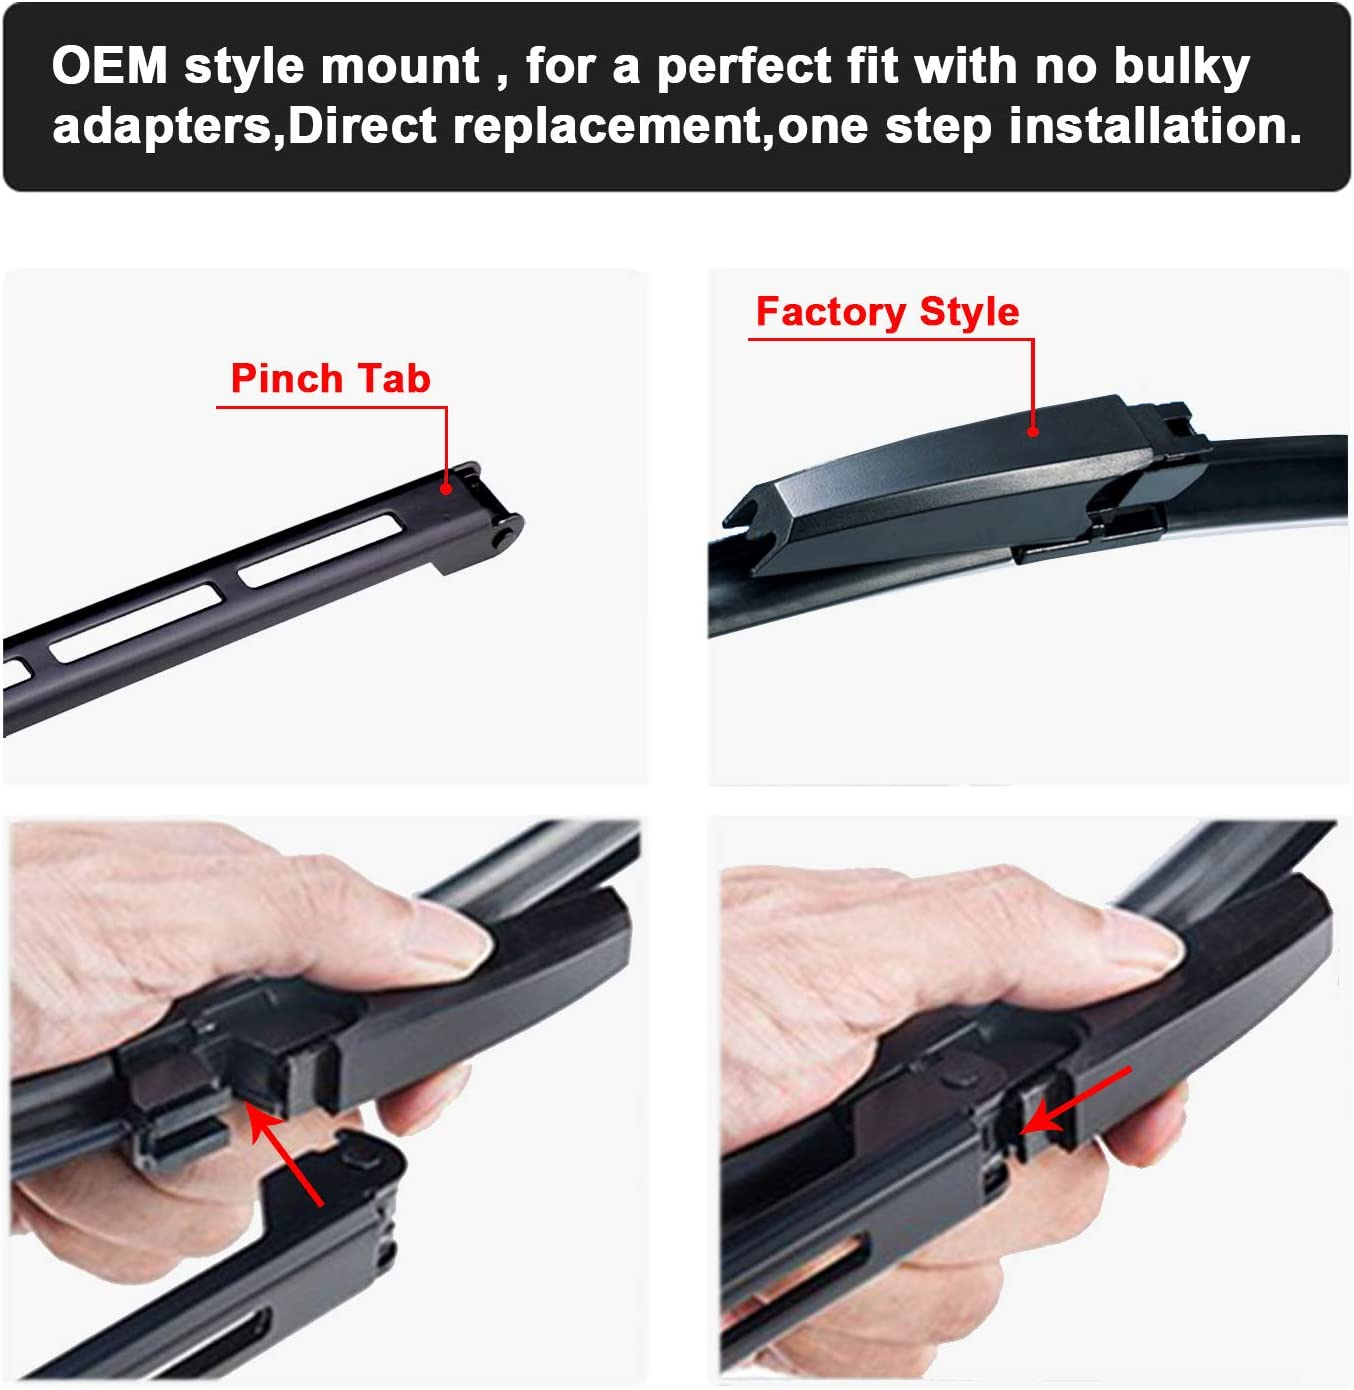 Pinch Tab 22//22 Set of 2 2 x Factory wipers for Audi A4 S4 Audi A6 S6 Audi Allroad 2002-2008 Windshield Wiper Blade Set